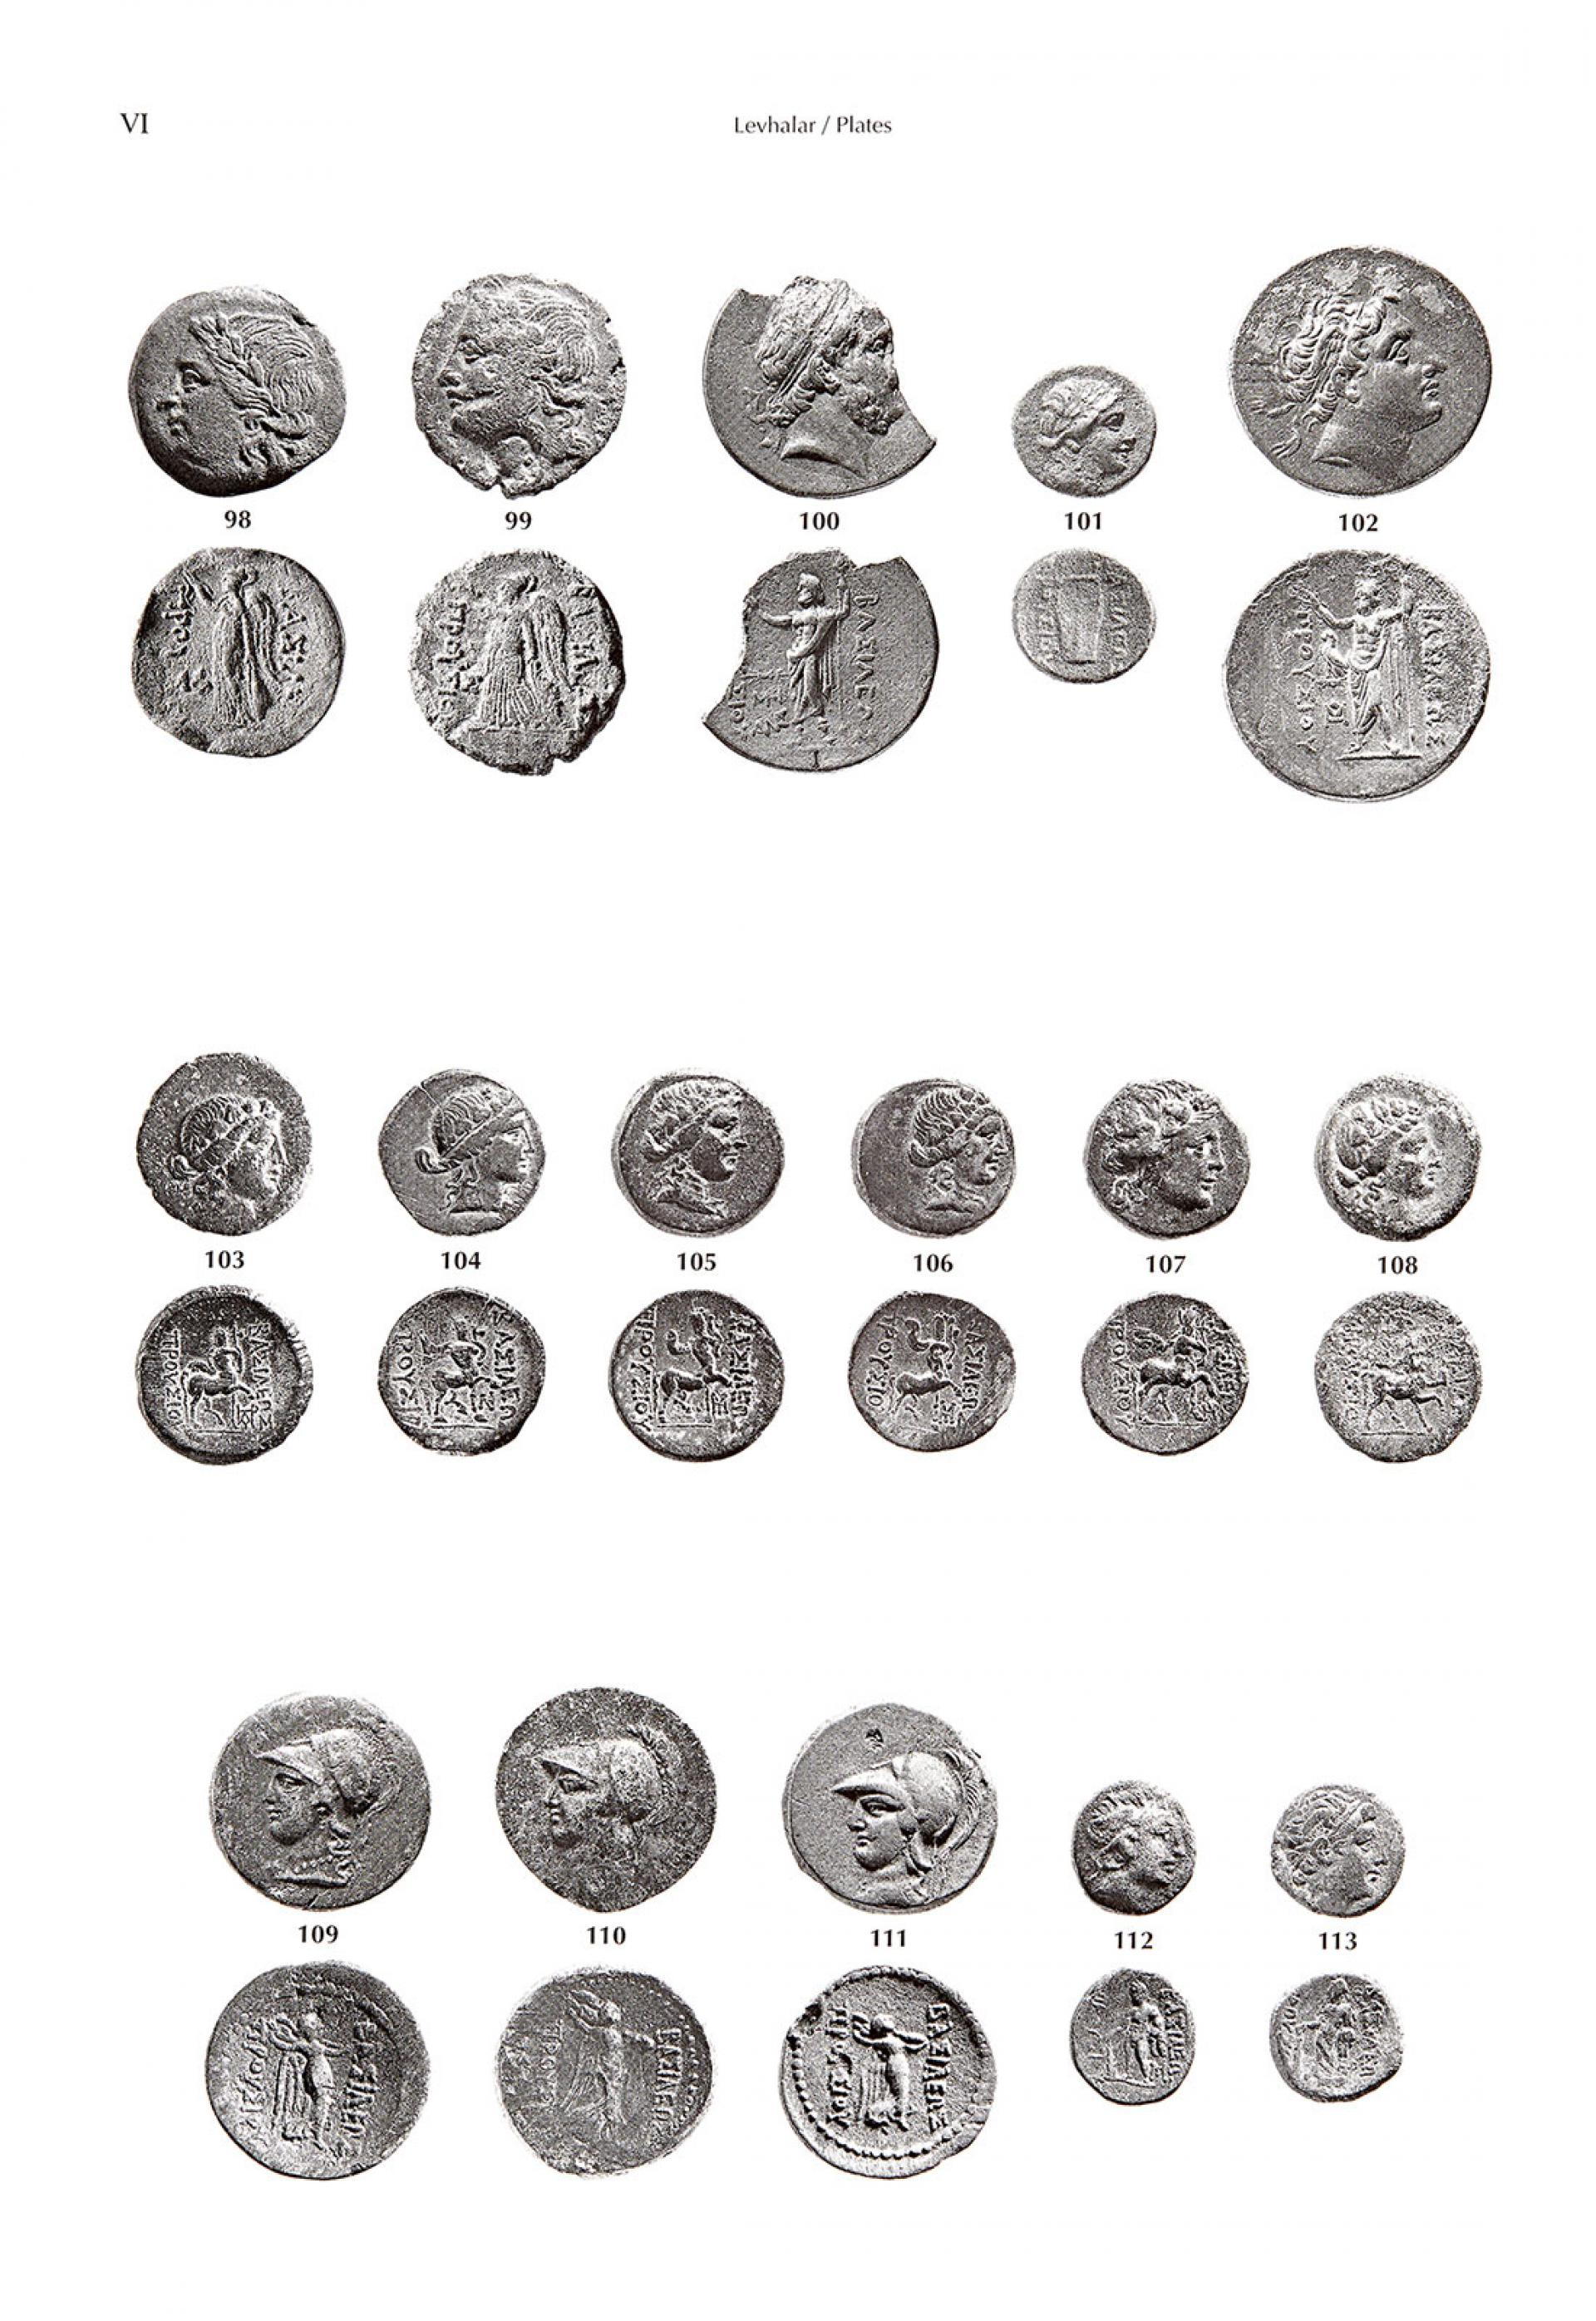 Catalogue of the Ancient Coins in the Sadberk Hanım Museum - BOOKS - Sadberk Hanım Museum